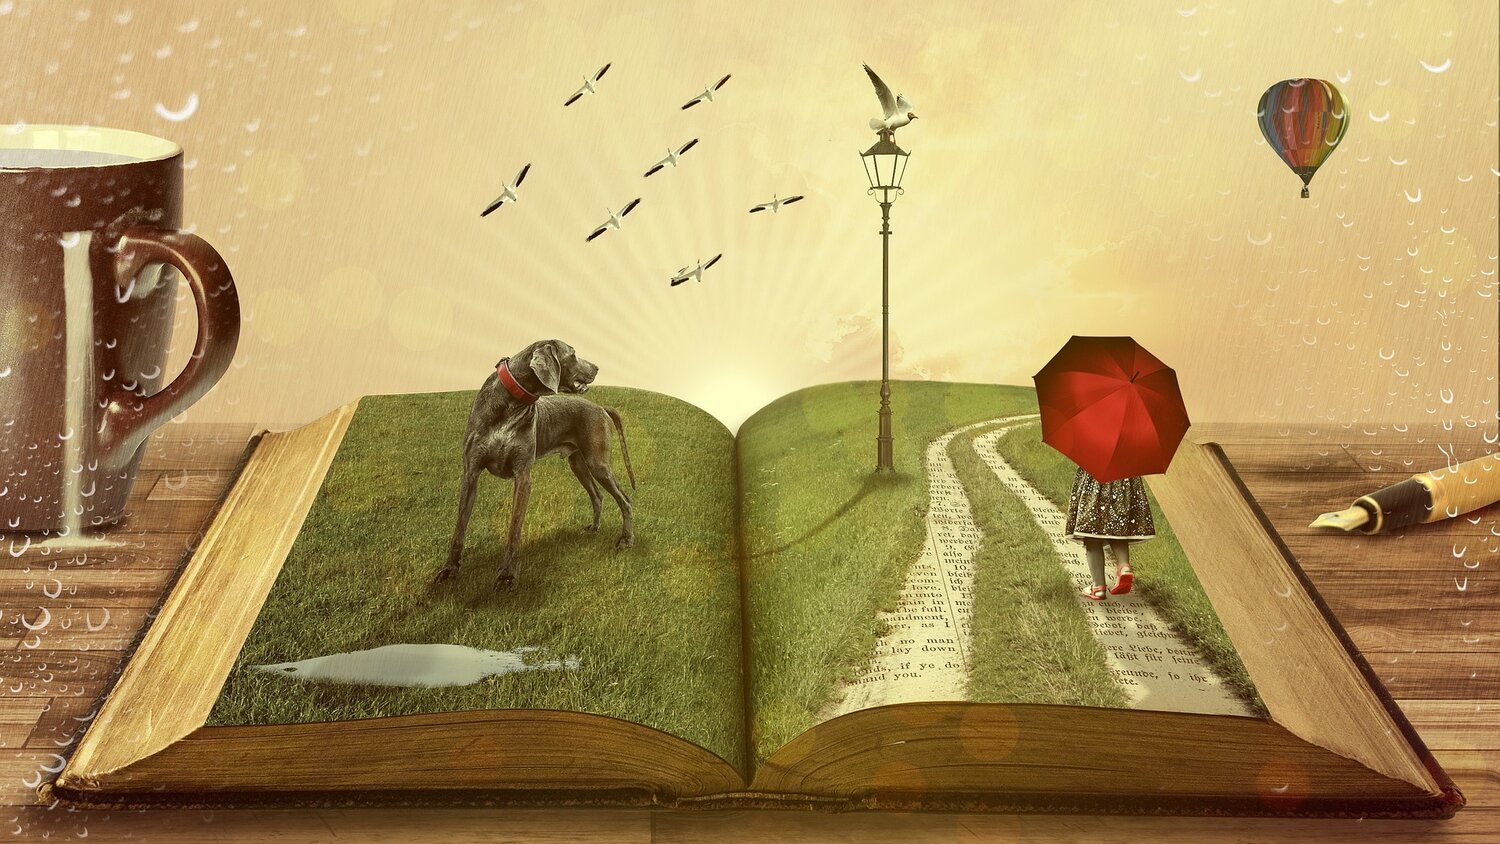 Open book with scene of dog and girl with red umbrella coming to life